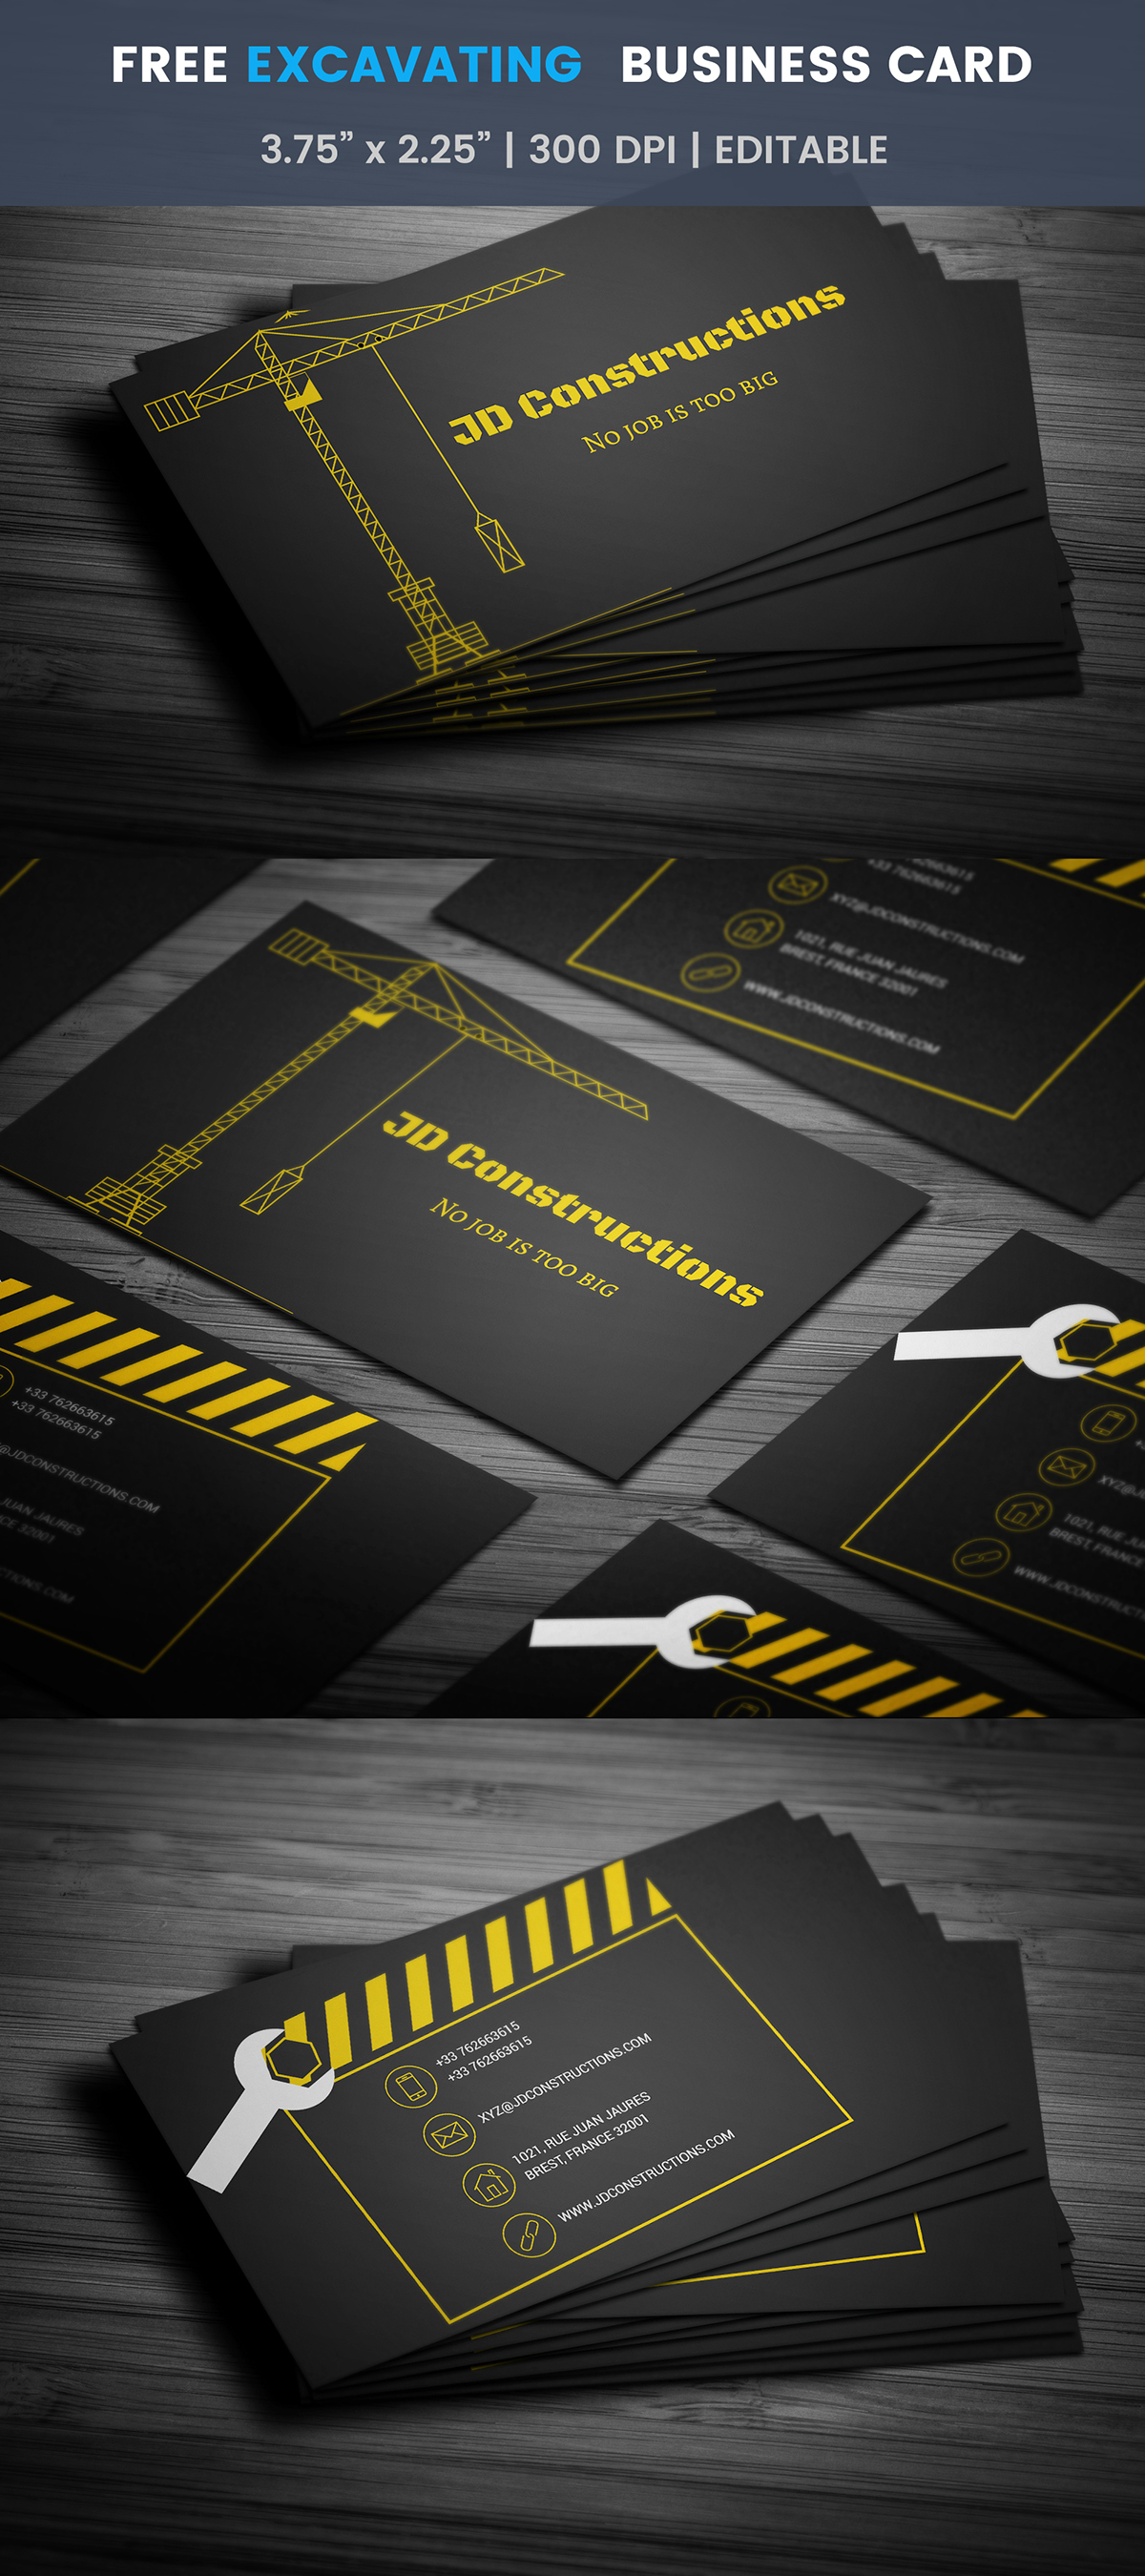 Free construction business card template on student show free construction business card template cheaphphosting Images